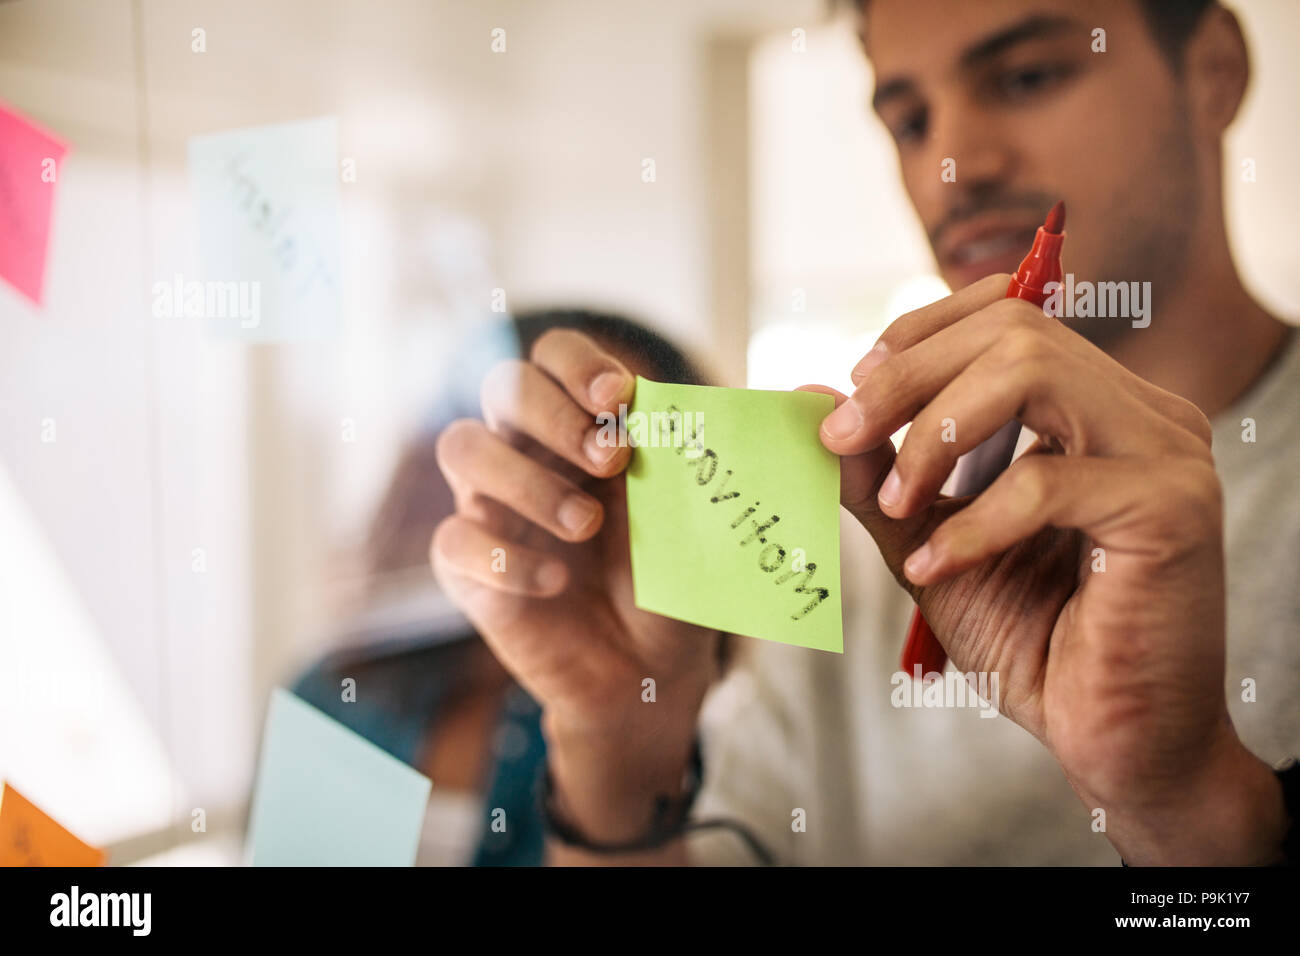 Man writing on sticky notes with marker pen and pasting on glass board in office. Entrepreneurs discussing business ideas and plans with sticky notes  Stock Photo